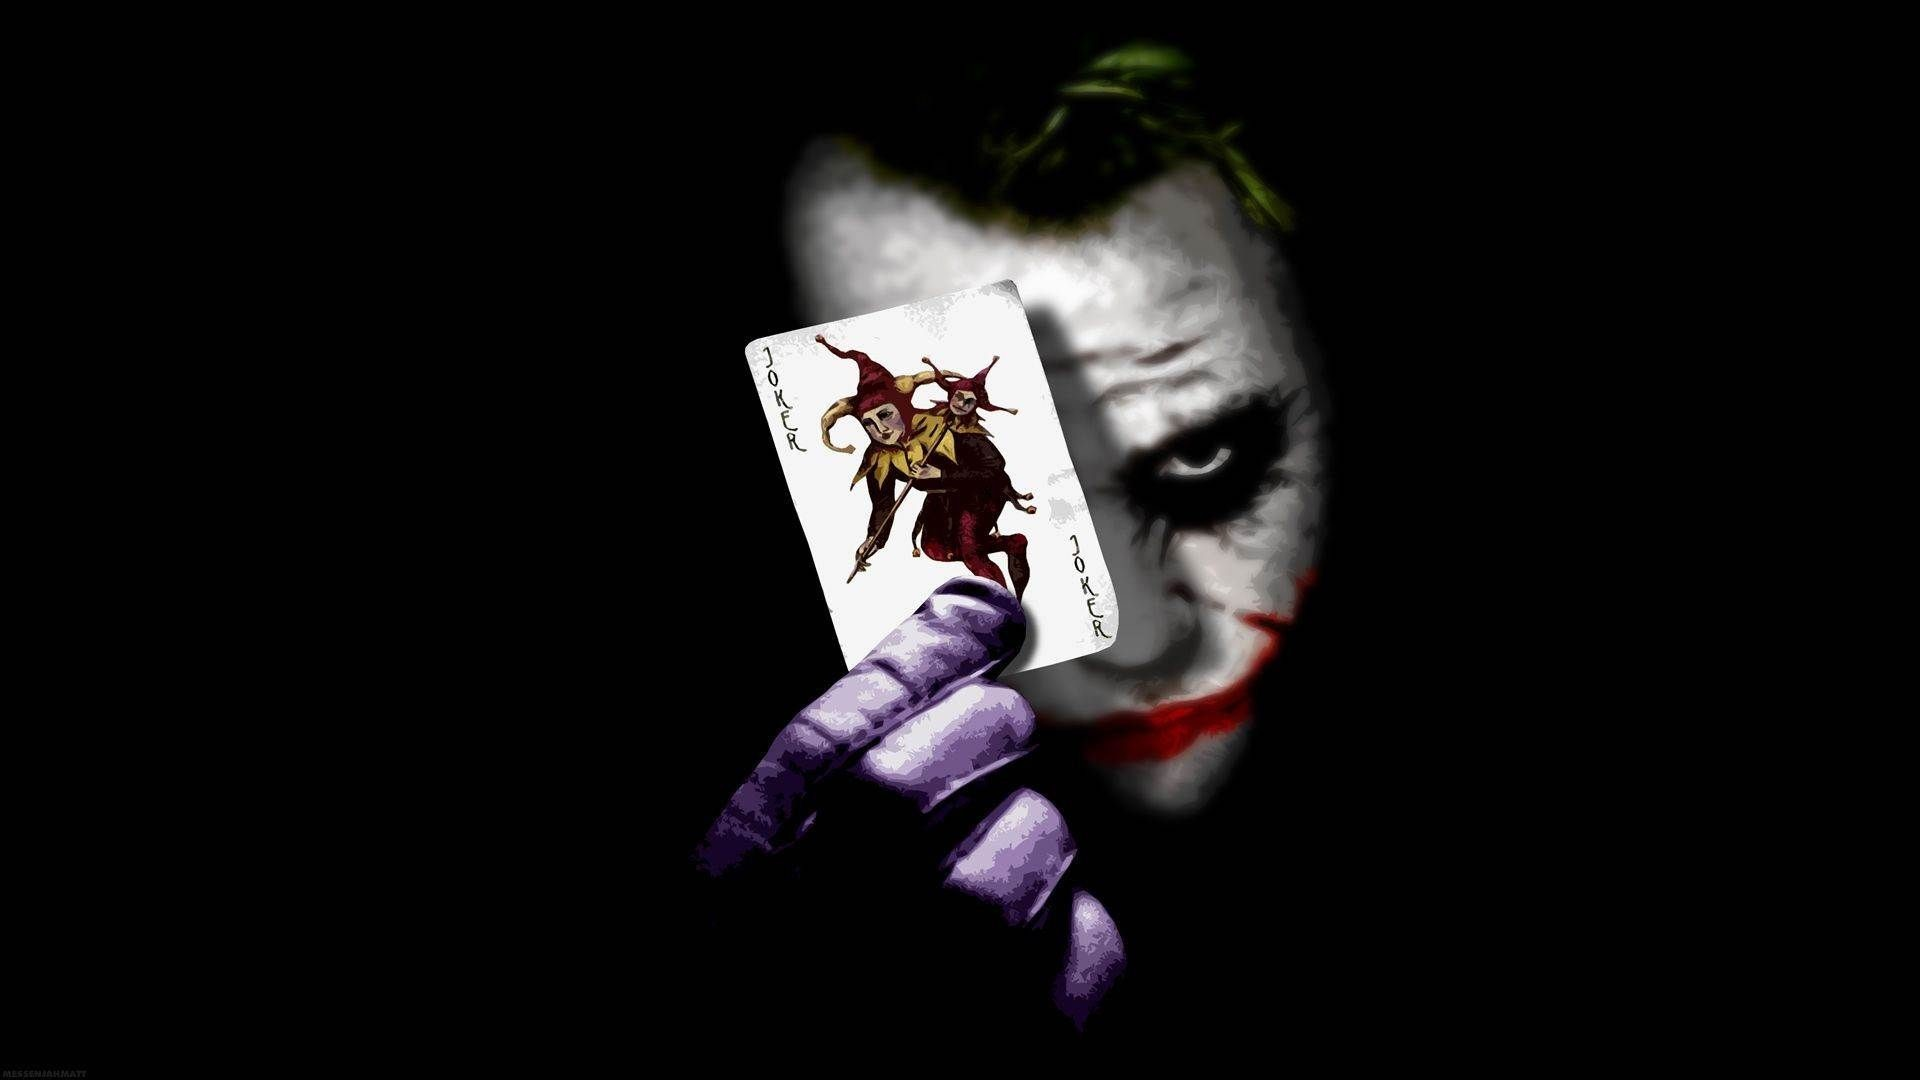 1920x1080 Comic Joker Wallpapers Group 1920A 1080 Images